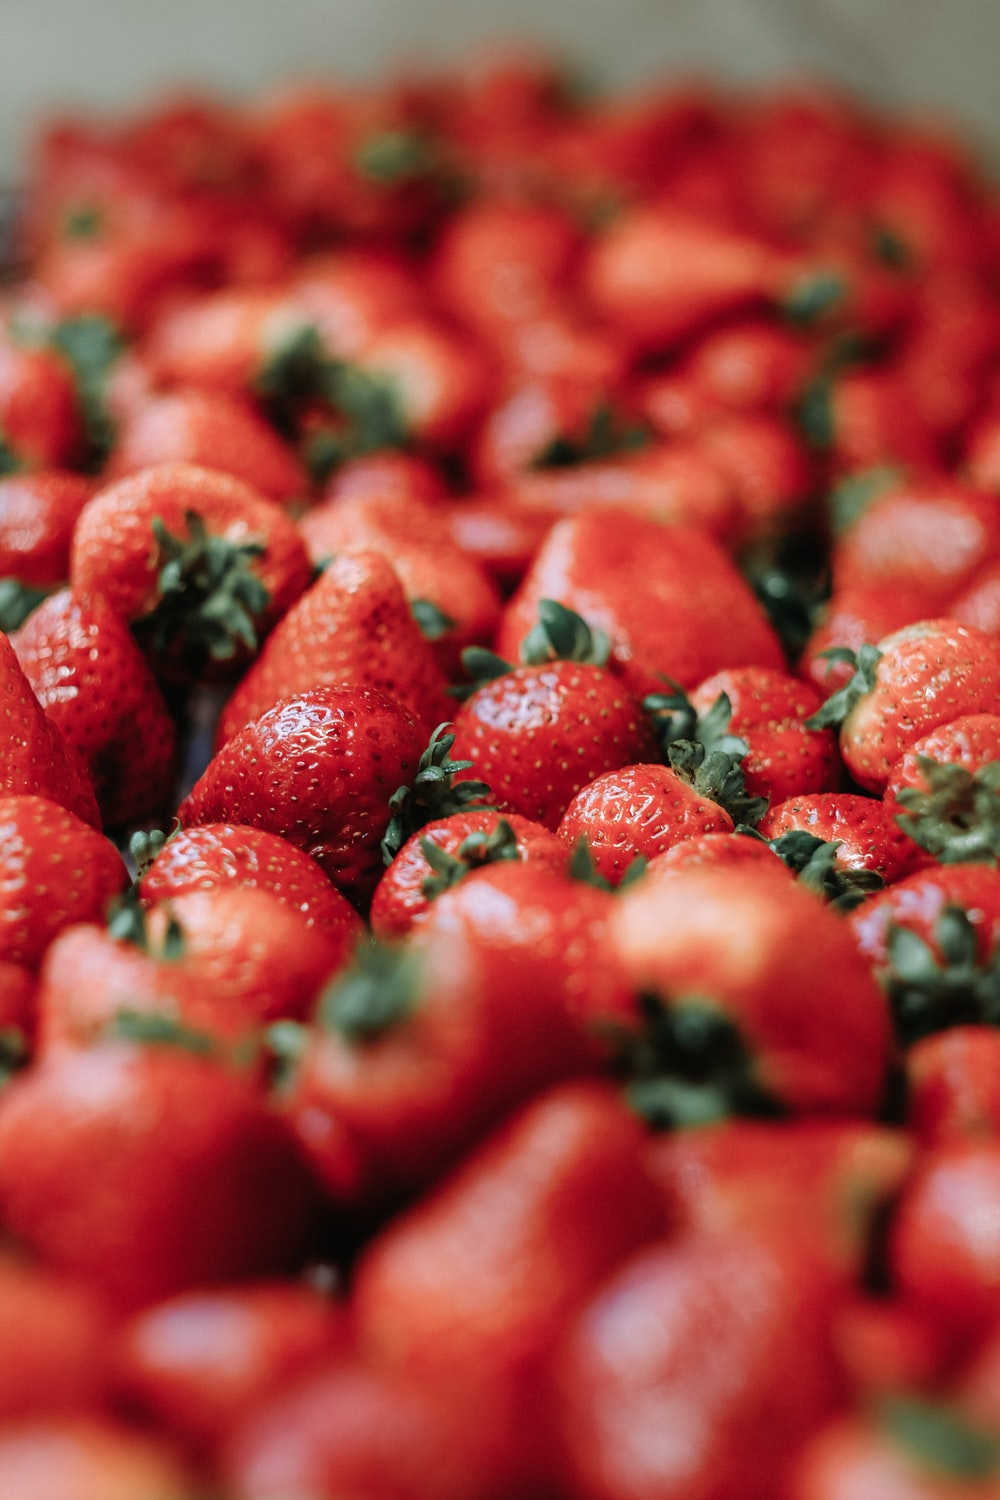 red strawberry fruits close-up photography